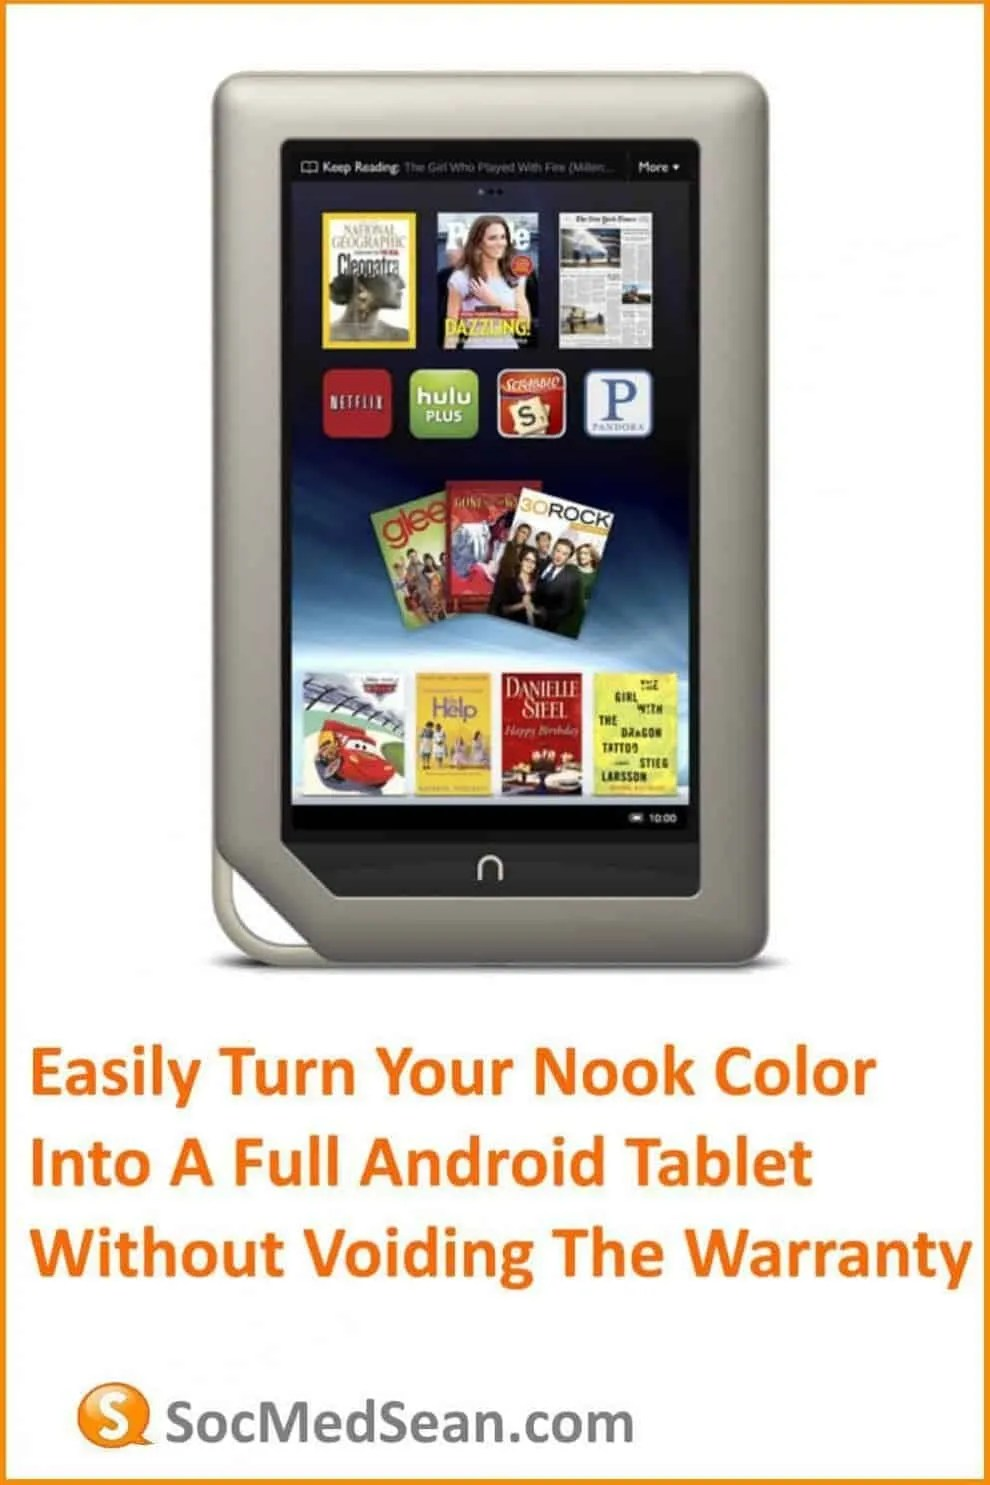 Convert your Nook color to an Android tablet without voiding the warranty